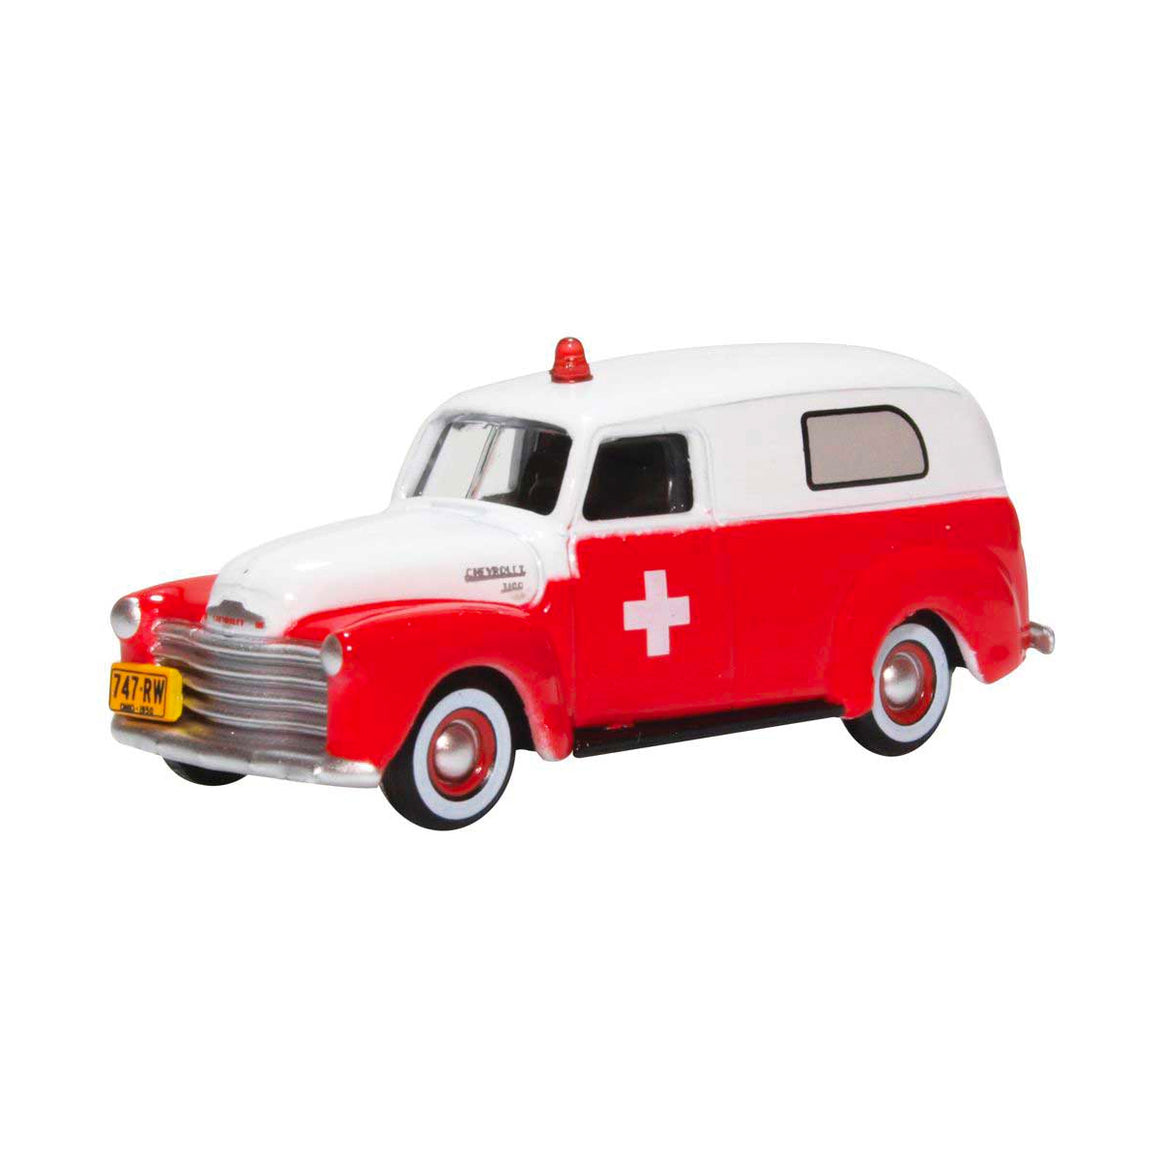 HO Scale: 1950 Chevrolet Panel Van - Ambulance